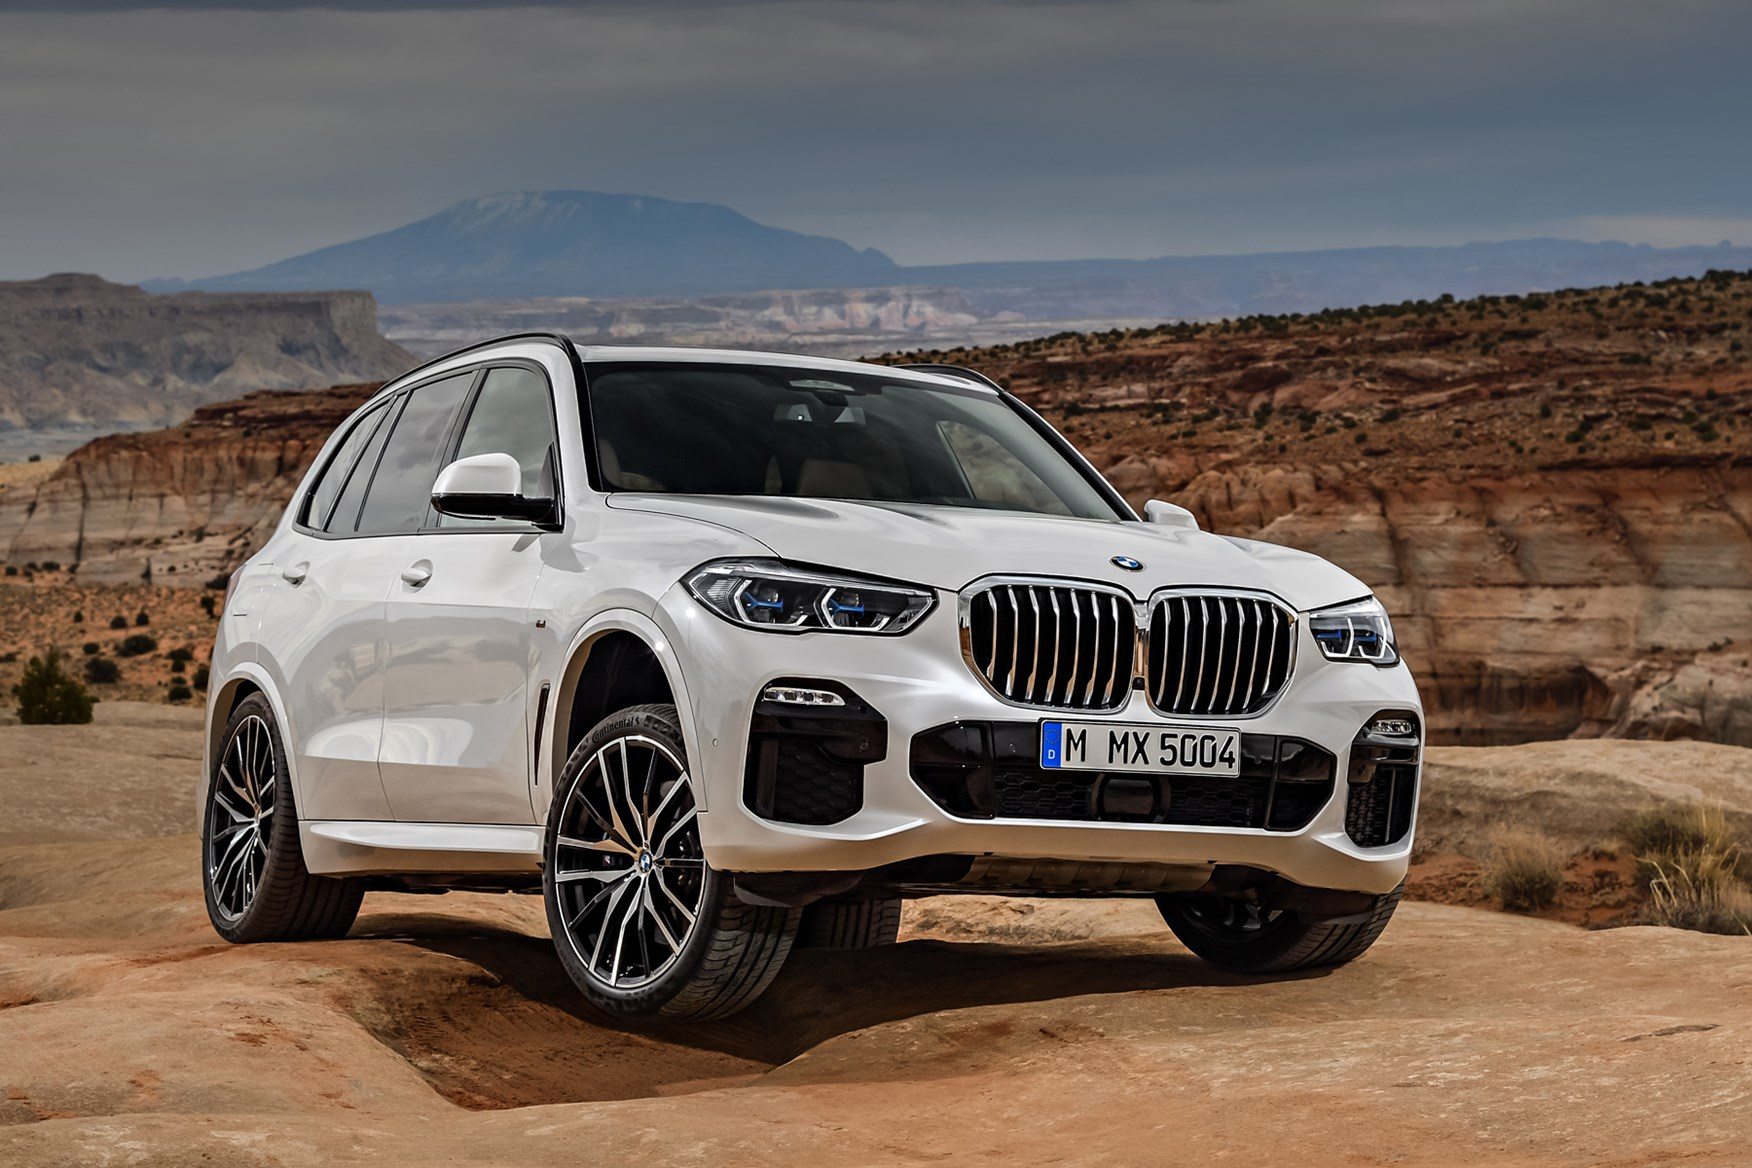 BMW X5 2018 will have xDrive all-wheel drive as standard